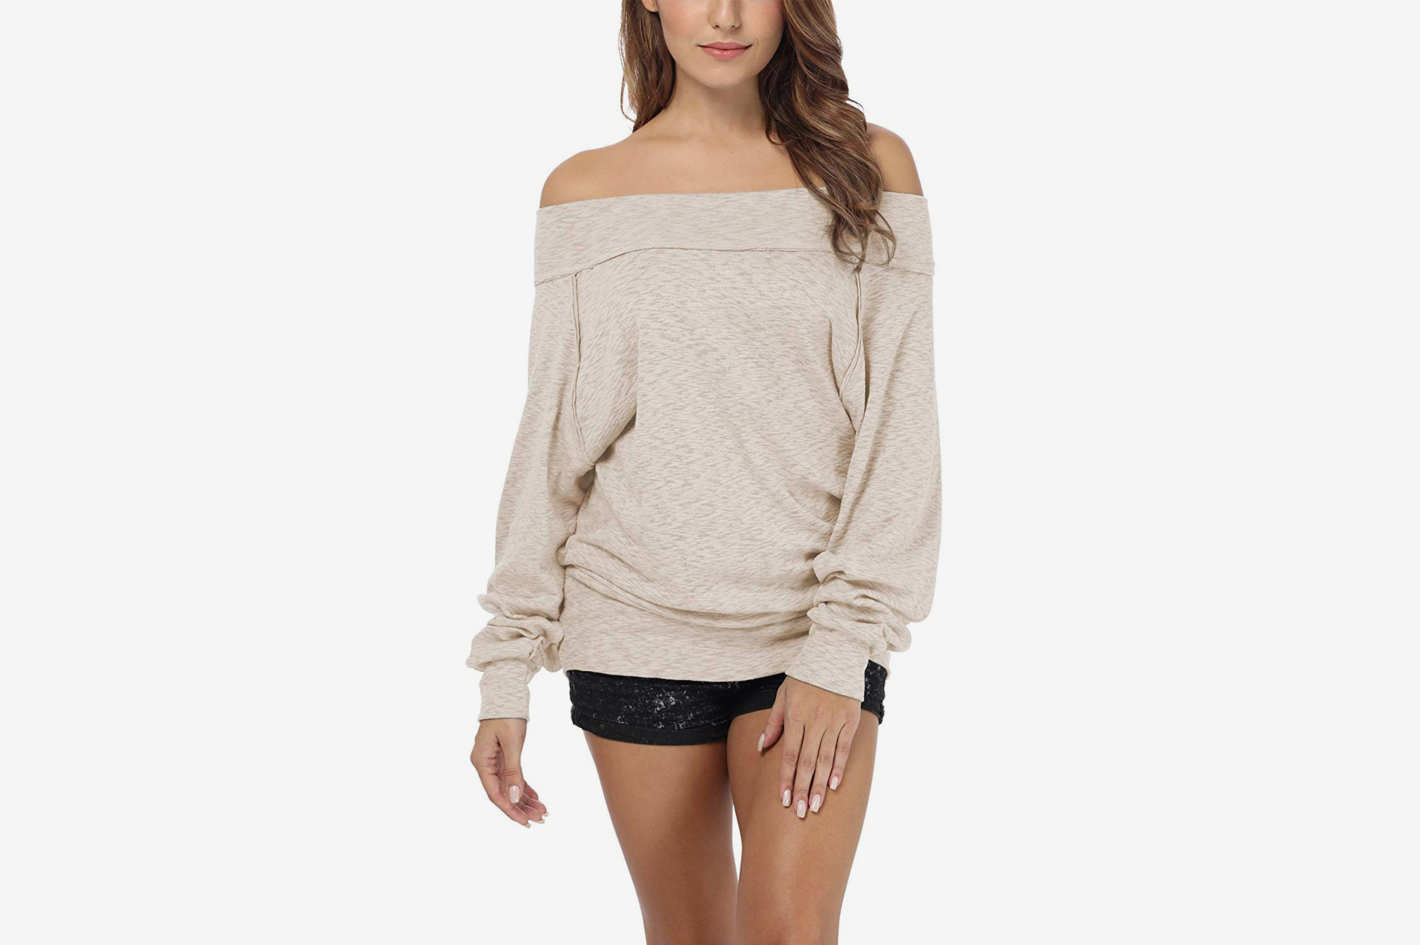 iGENJUN Women's Dolman Sleeve Off The Shoulder Sweater